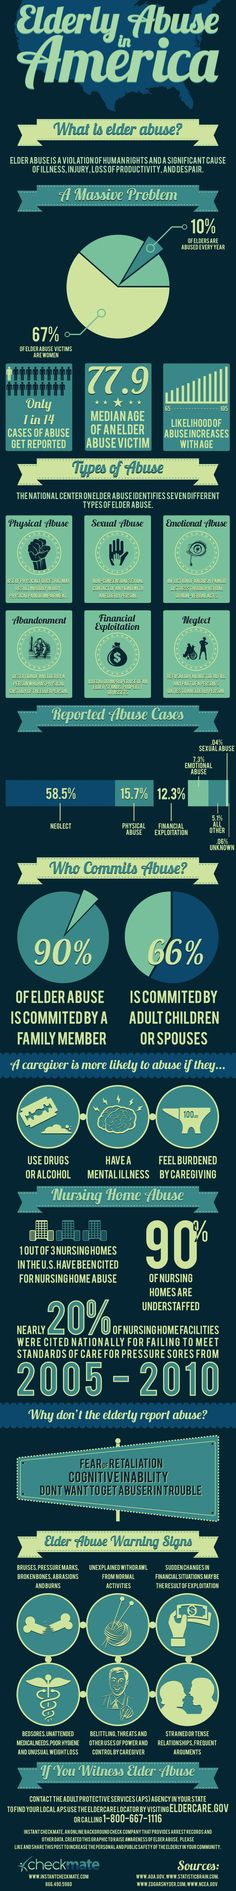 June 5th is World Elder Abuse Awareness Day. Instant Checkmate has created an infographic on elder abuse in America to help raise awareness of this crime. Help us stop elder abuse in America!  http://blog.instantcheckmate.com/elderly-abuse-in-america/ elderly abuse, elder abuse, abus awar